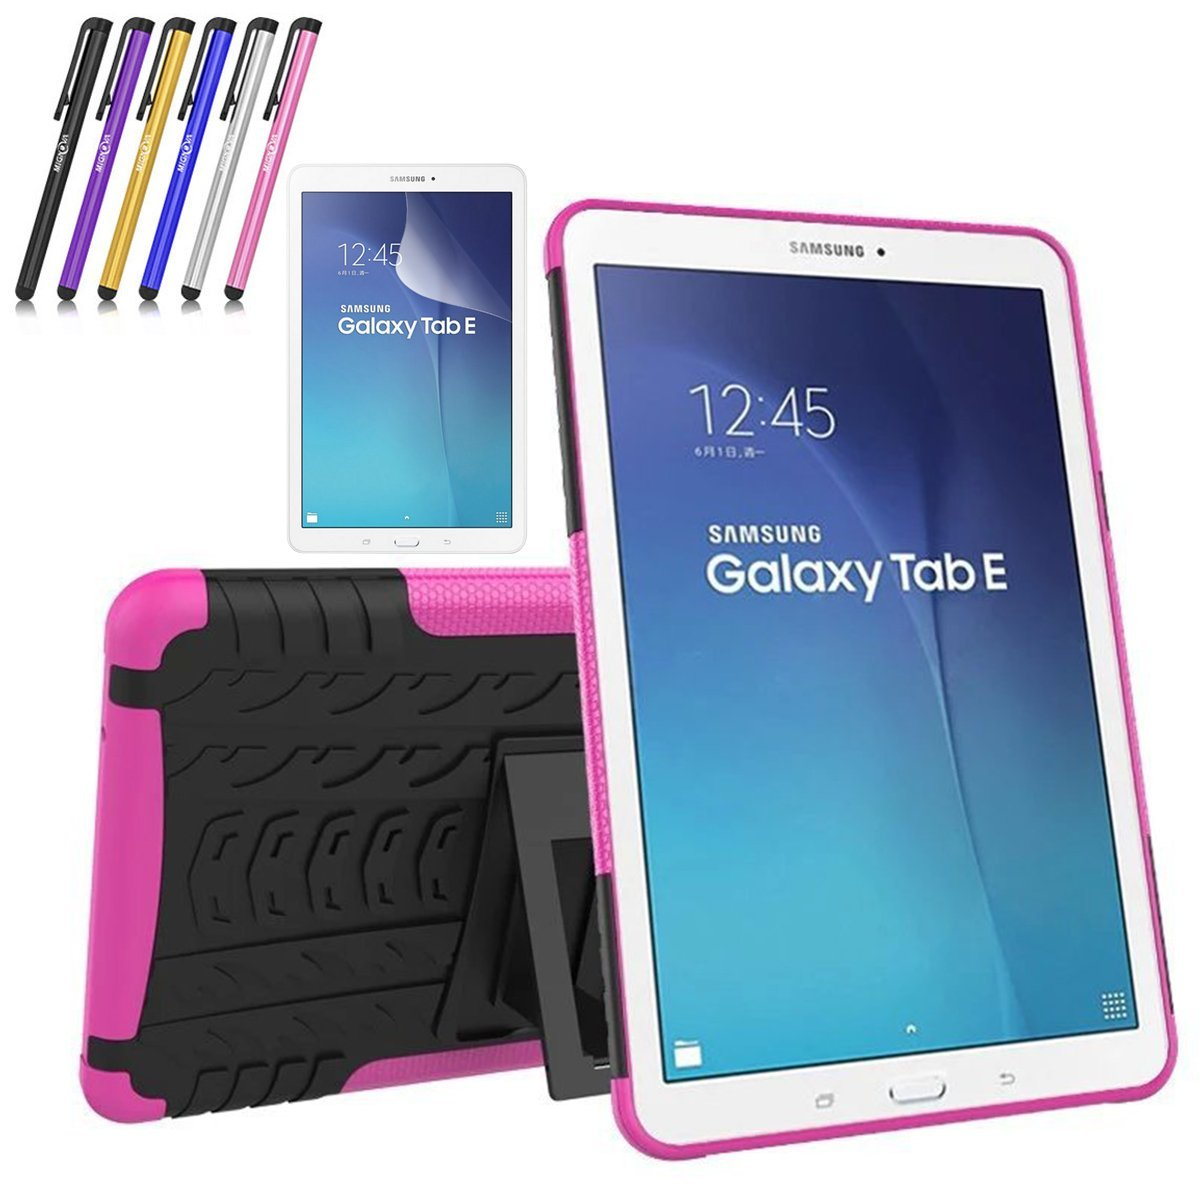 Mignova Heavy Duty Hybrid Protective Case with Kickstand Impact Resistant For Samsung Galaxy Tab E 9.6 Inch SM-T560 Screen Protector Film and Stylus Pen (Black)